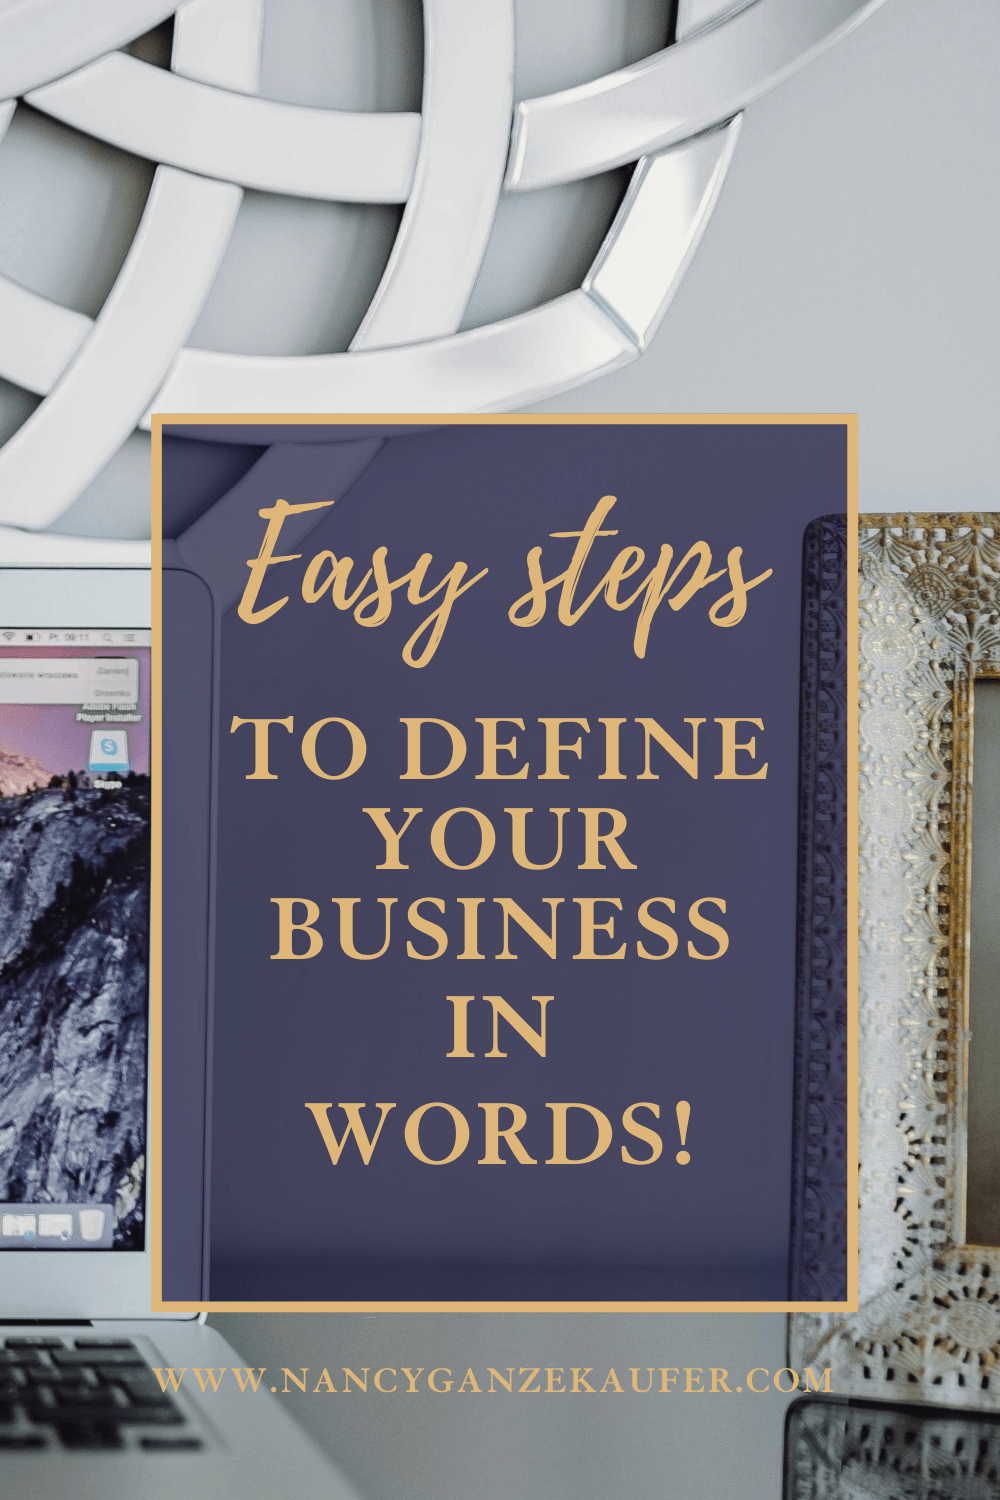 Easy steps to define your business in words.